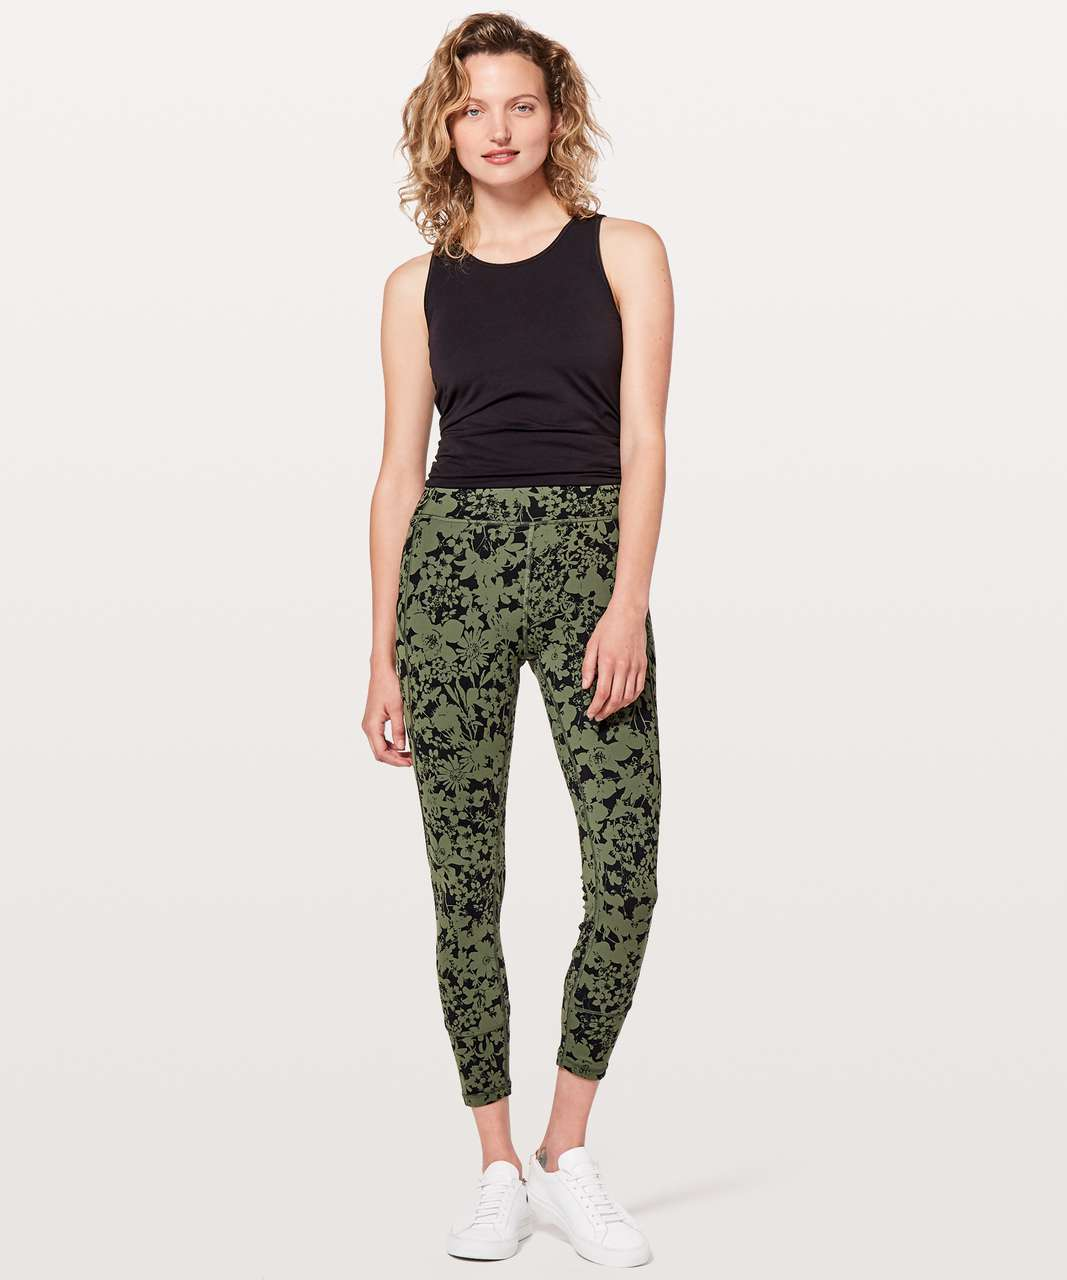 "Lululemon In Movement 7/8 Tight *Everlux 25"" - Efflorescent Barracks Green Black"